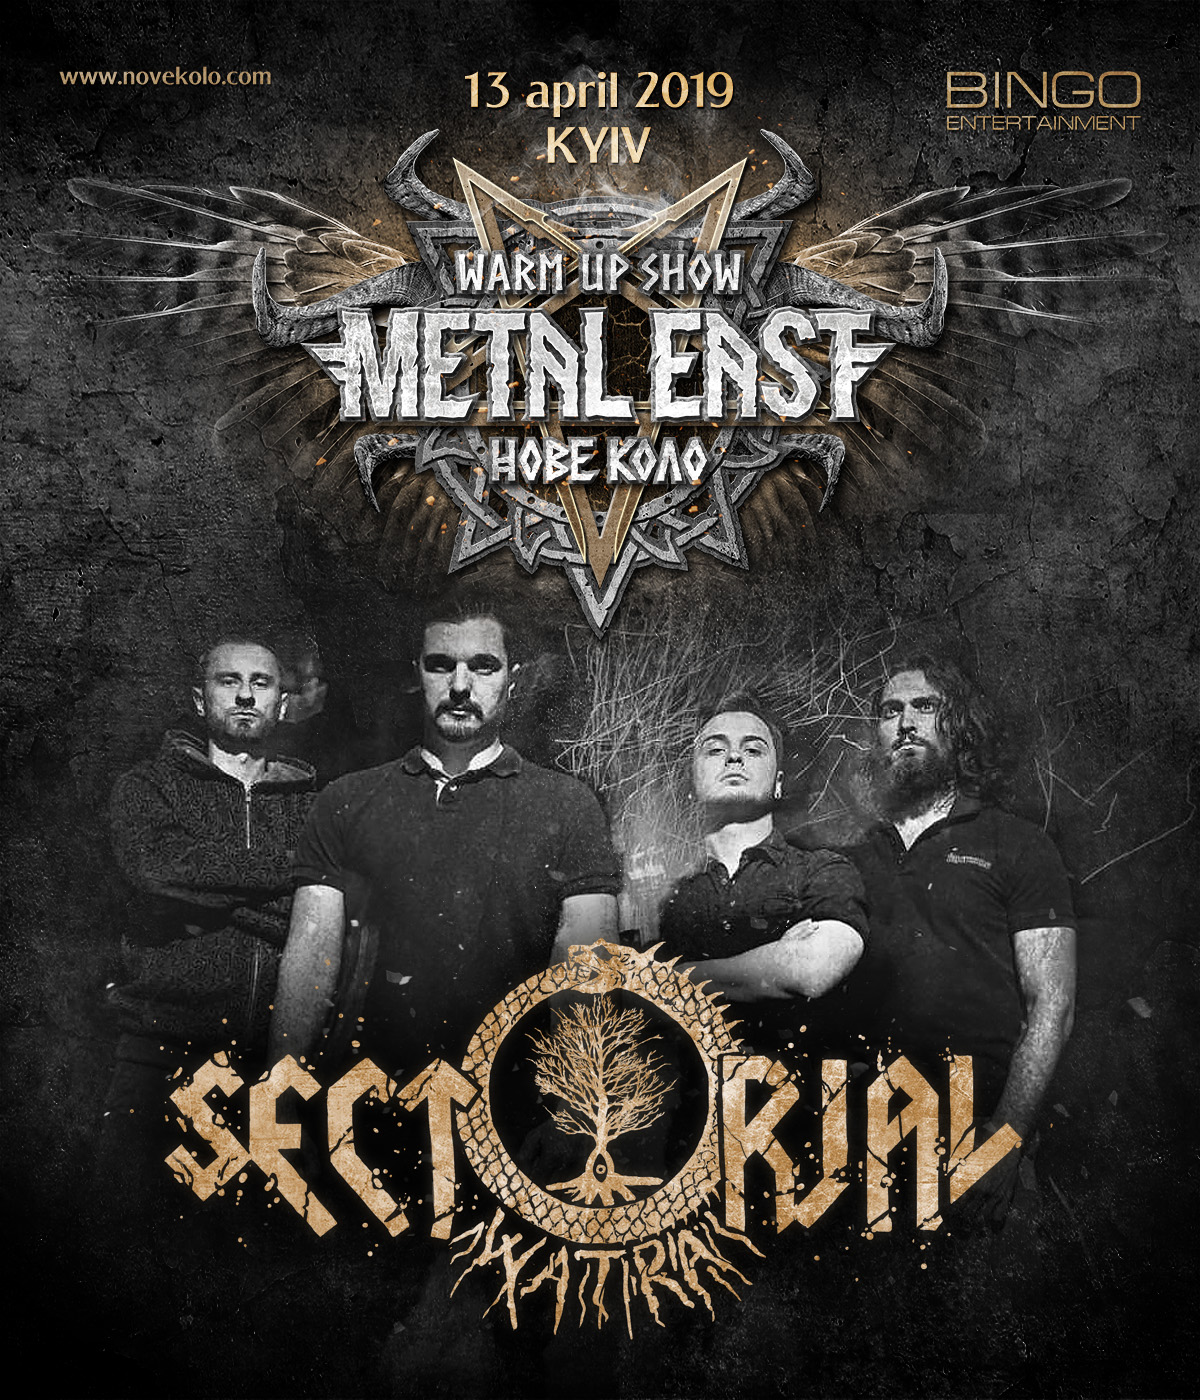 On April 13th of 2019 SECTORIAL will play at Metal East Nove Kolo warm-up show in Bingo club